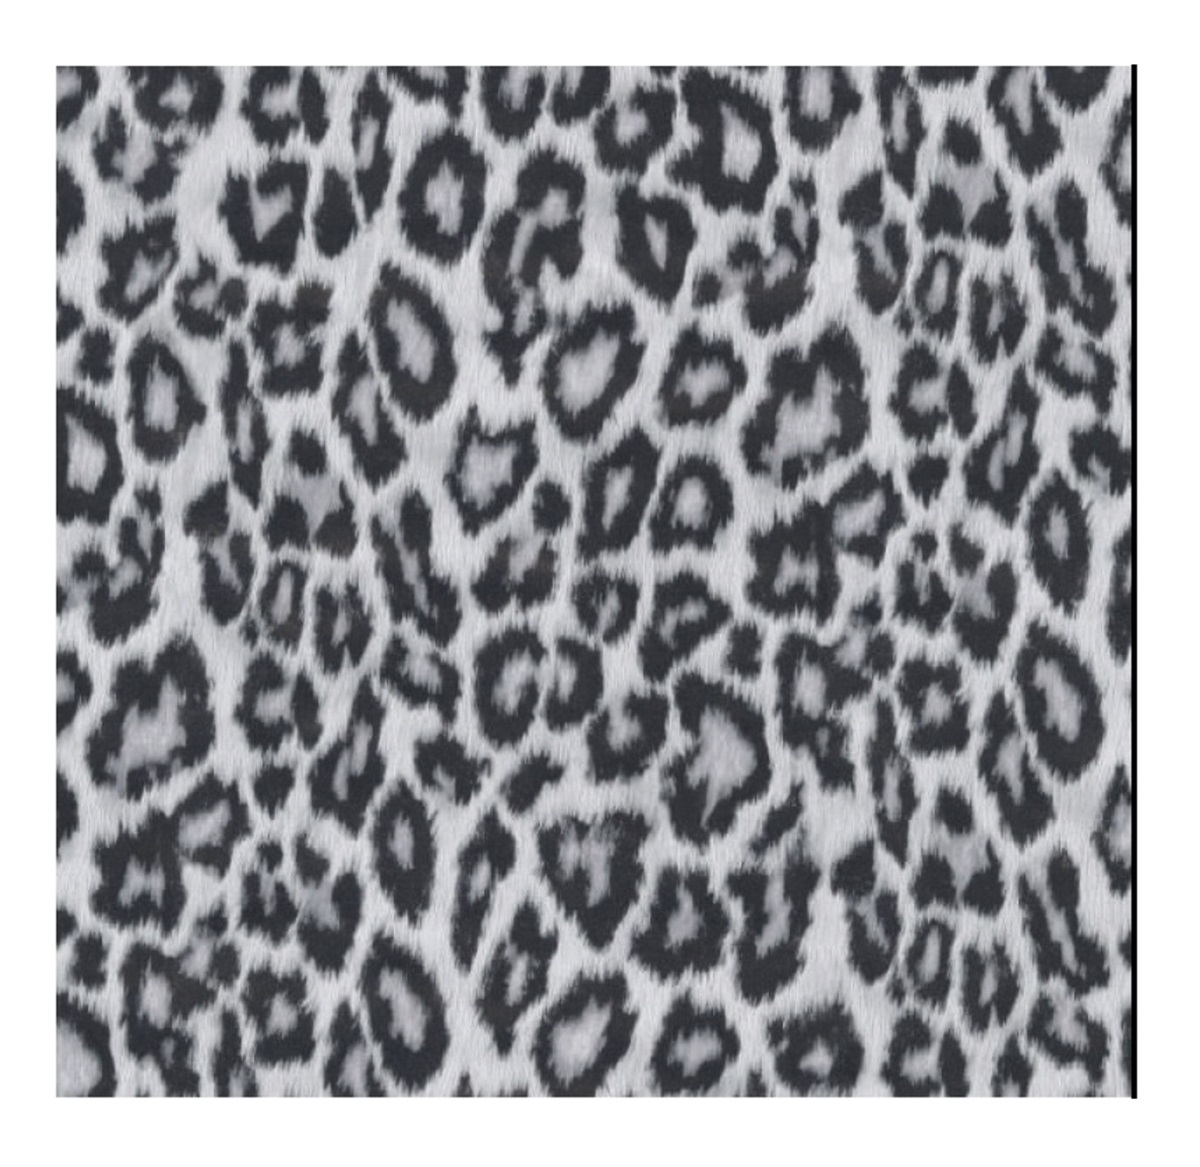 klebefolie leopard grau selbstklebefolie m belfolie 45 x 200 cm klebefolie mit muster. Black Bedroom Furniture Sets. Home Design Ideas